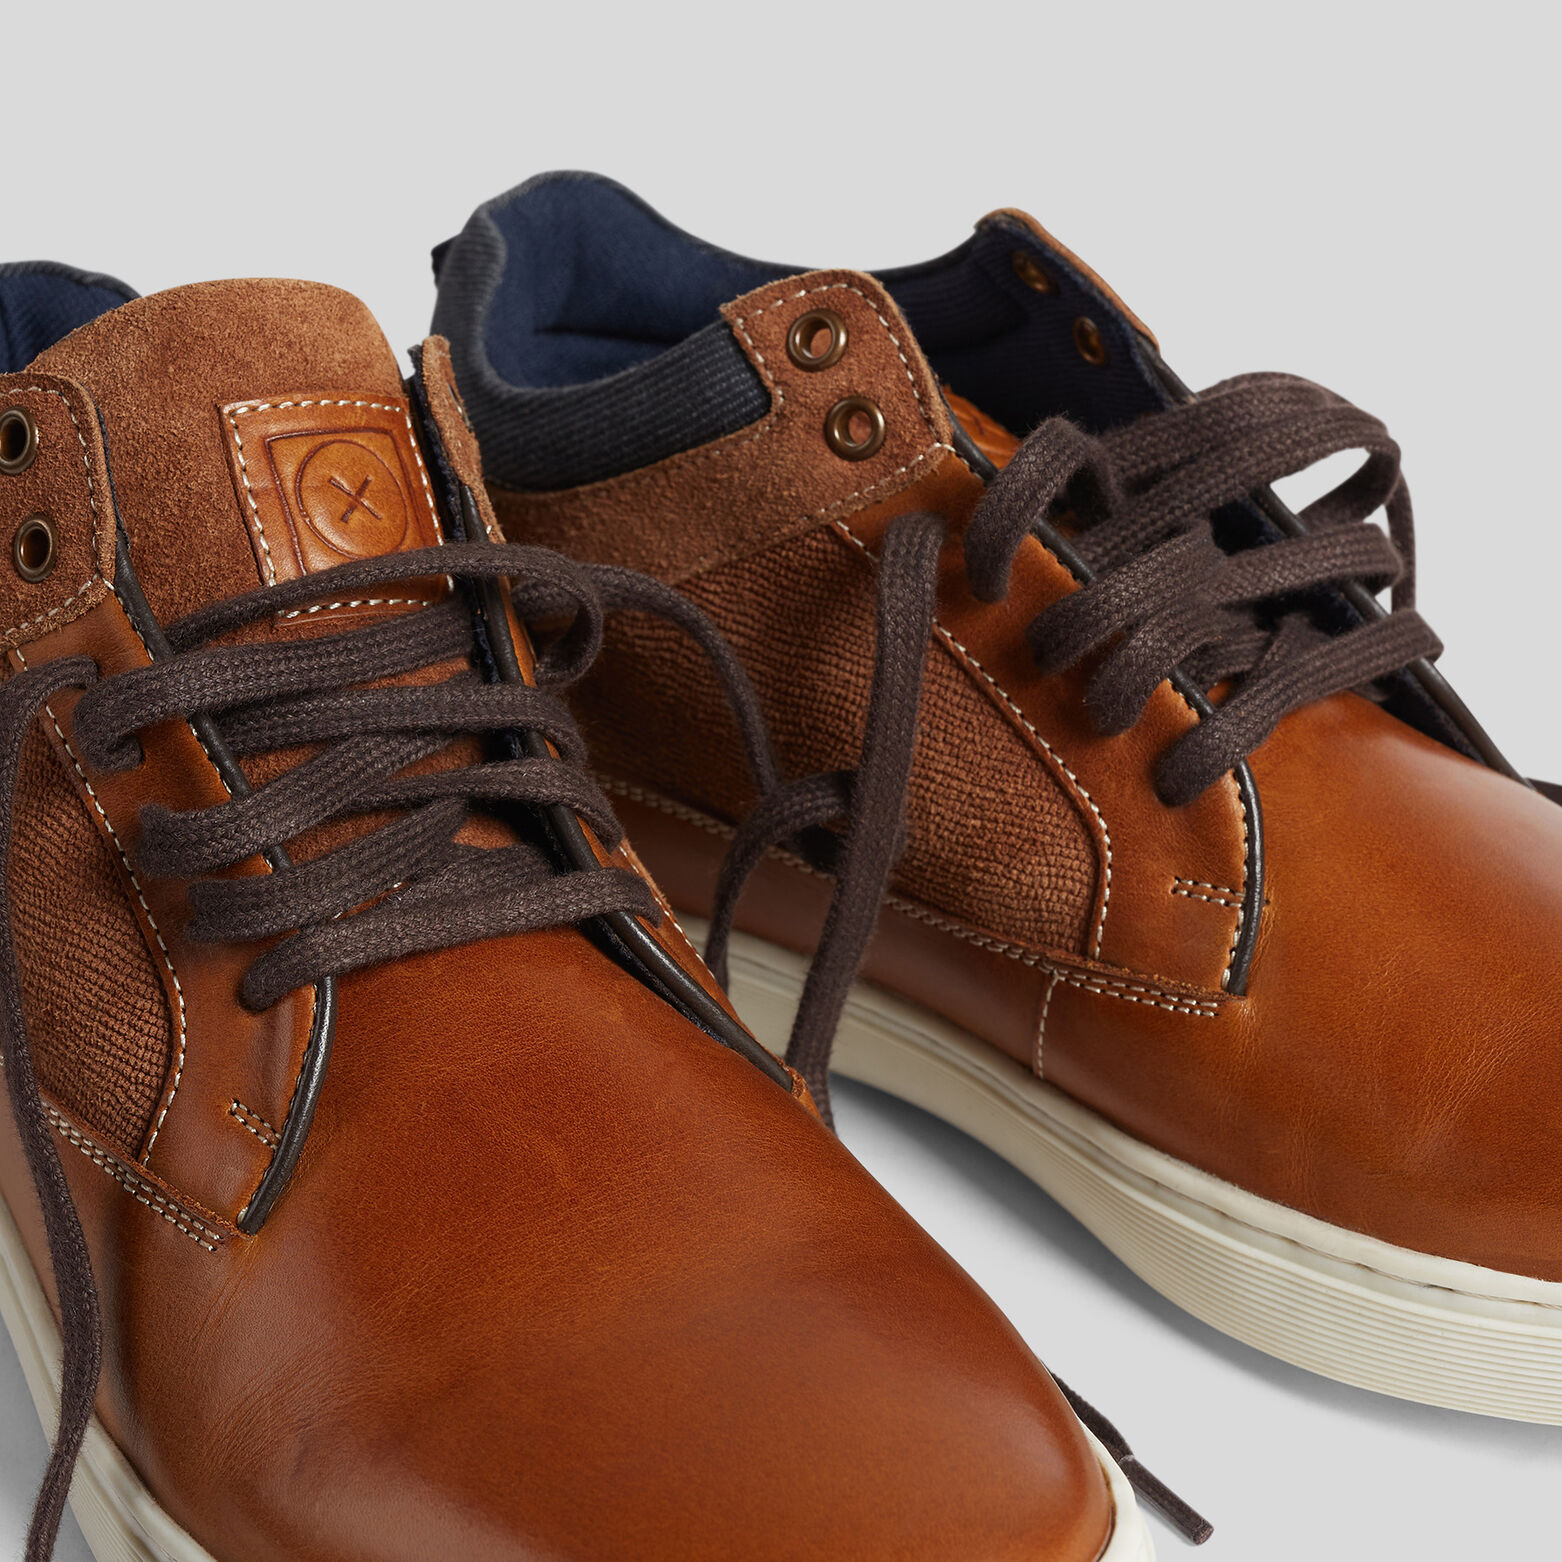 Chaussures montantes homme cuir